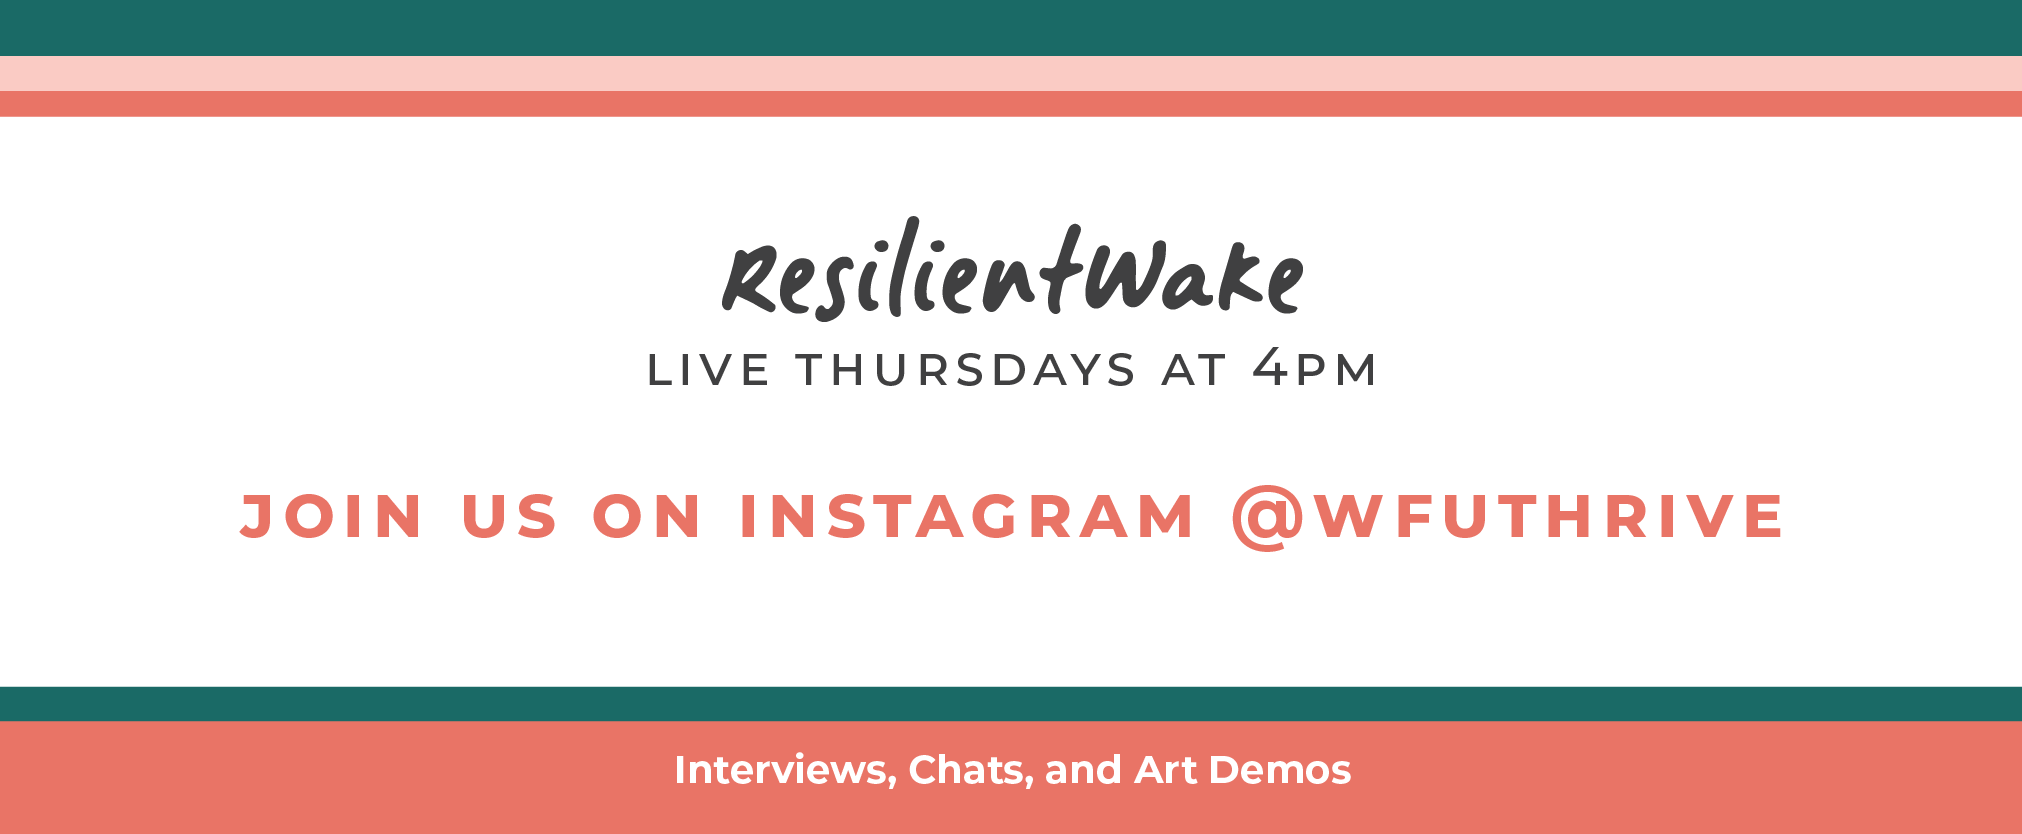 Join us live on Instagram @wfuthrive every Thursday at 4pm EST